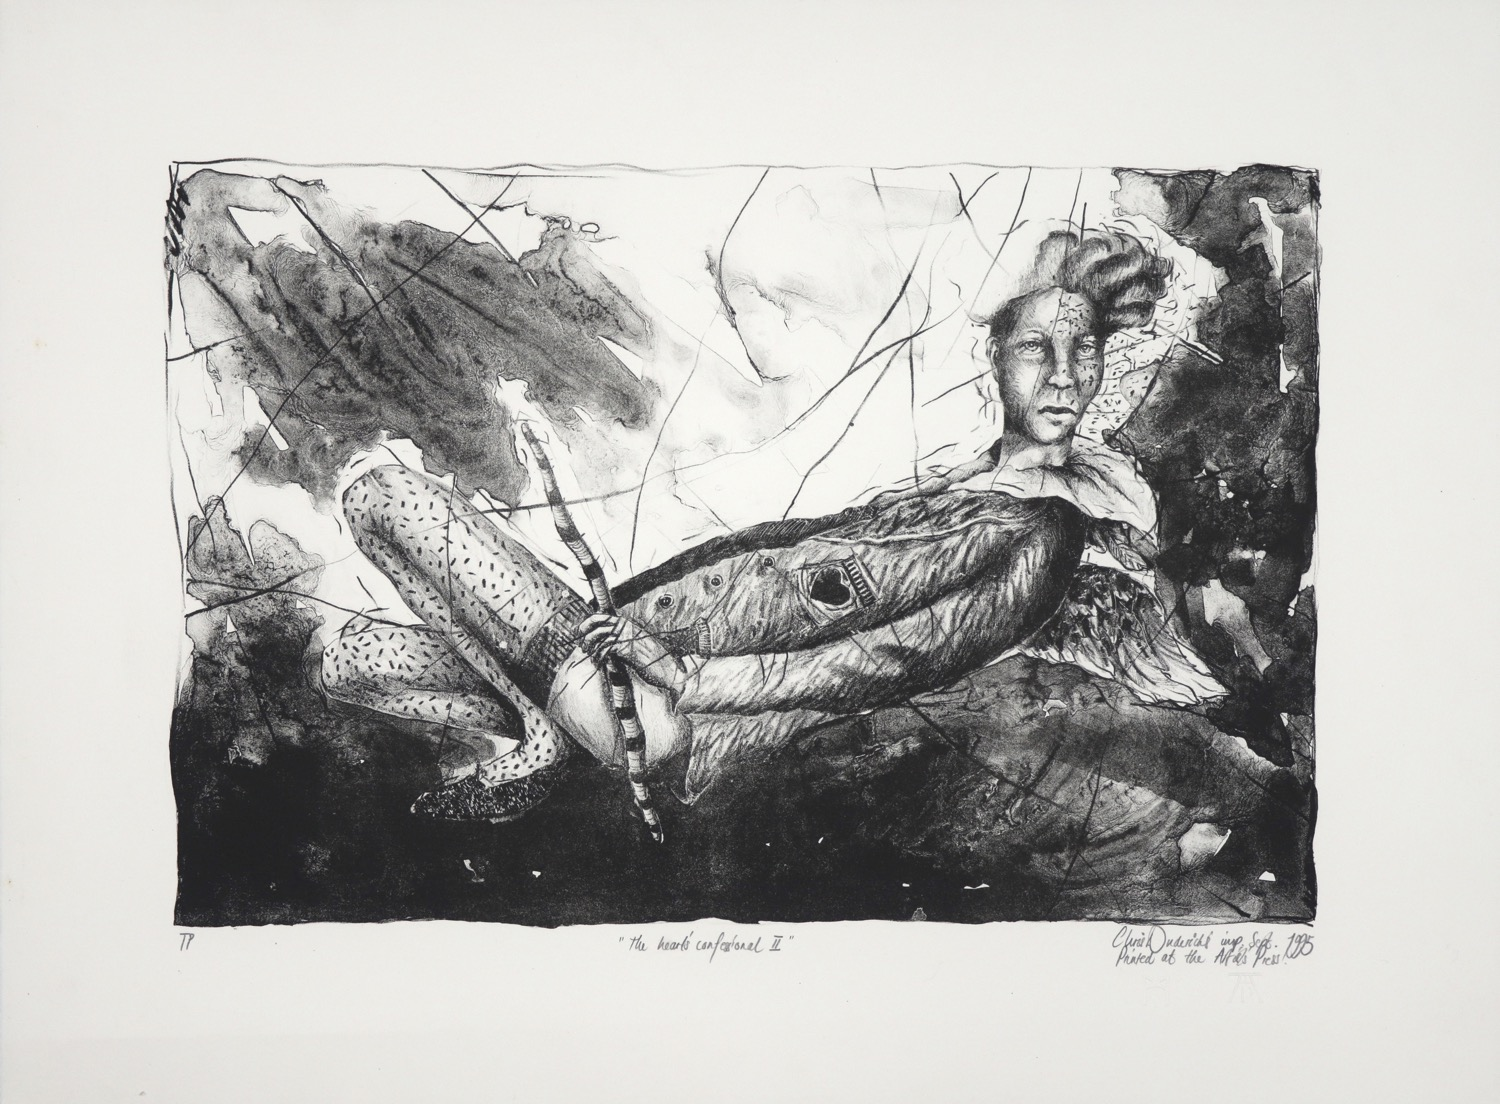 Black and white print of a reclining figure with head turned towards viewer holding a stripped stick.